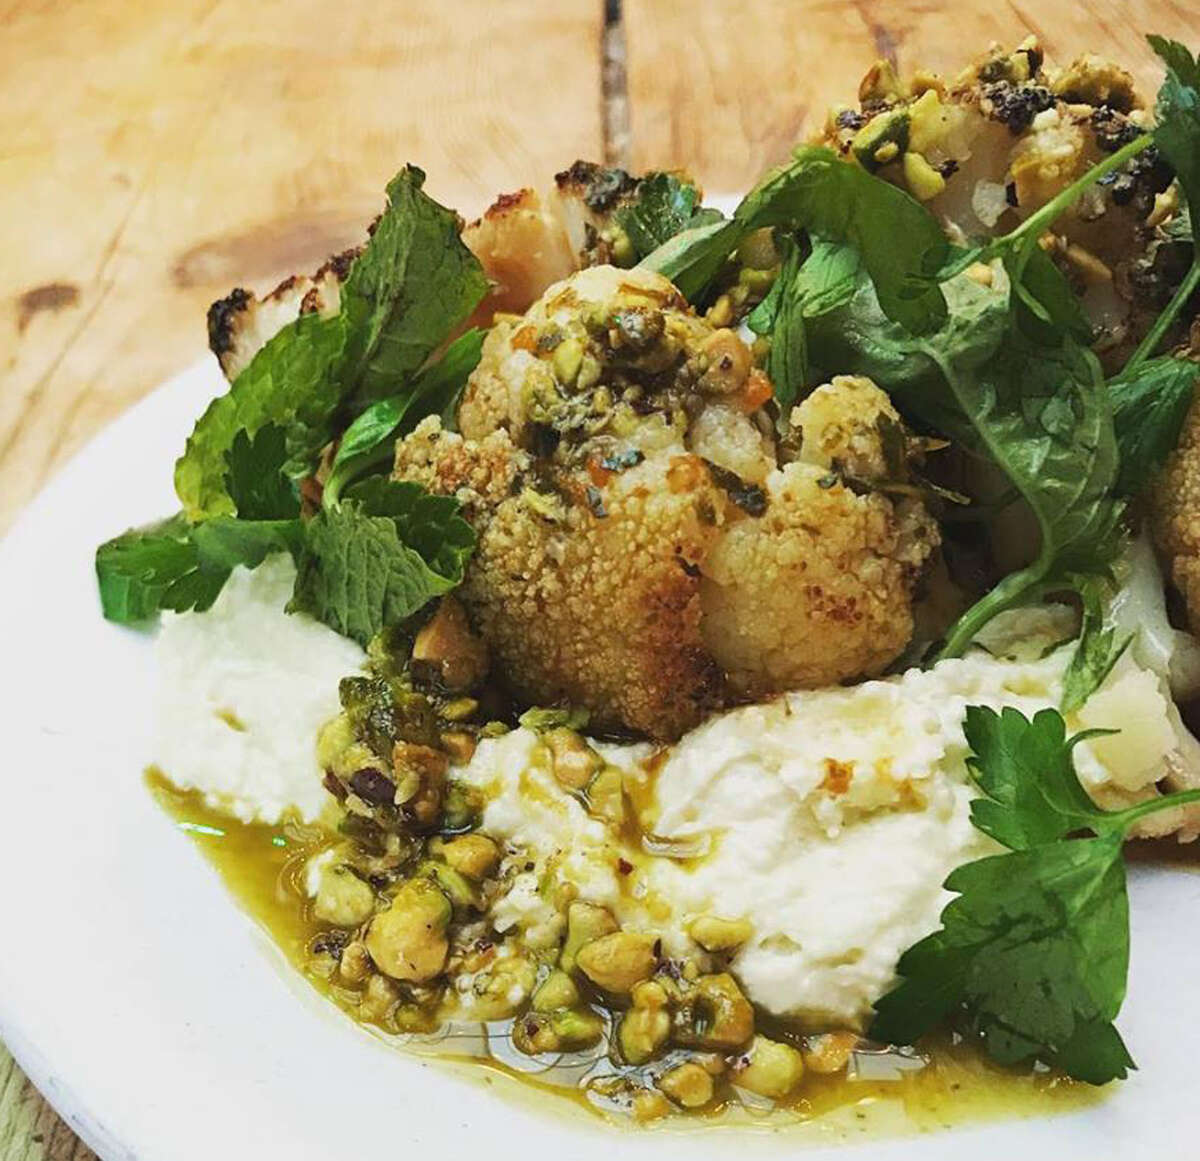 Grilled cauliflower with whipped feta, pistachio and chermoula at Peck's Arcade in Troy. (Provided photo.)